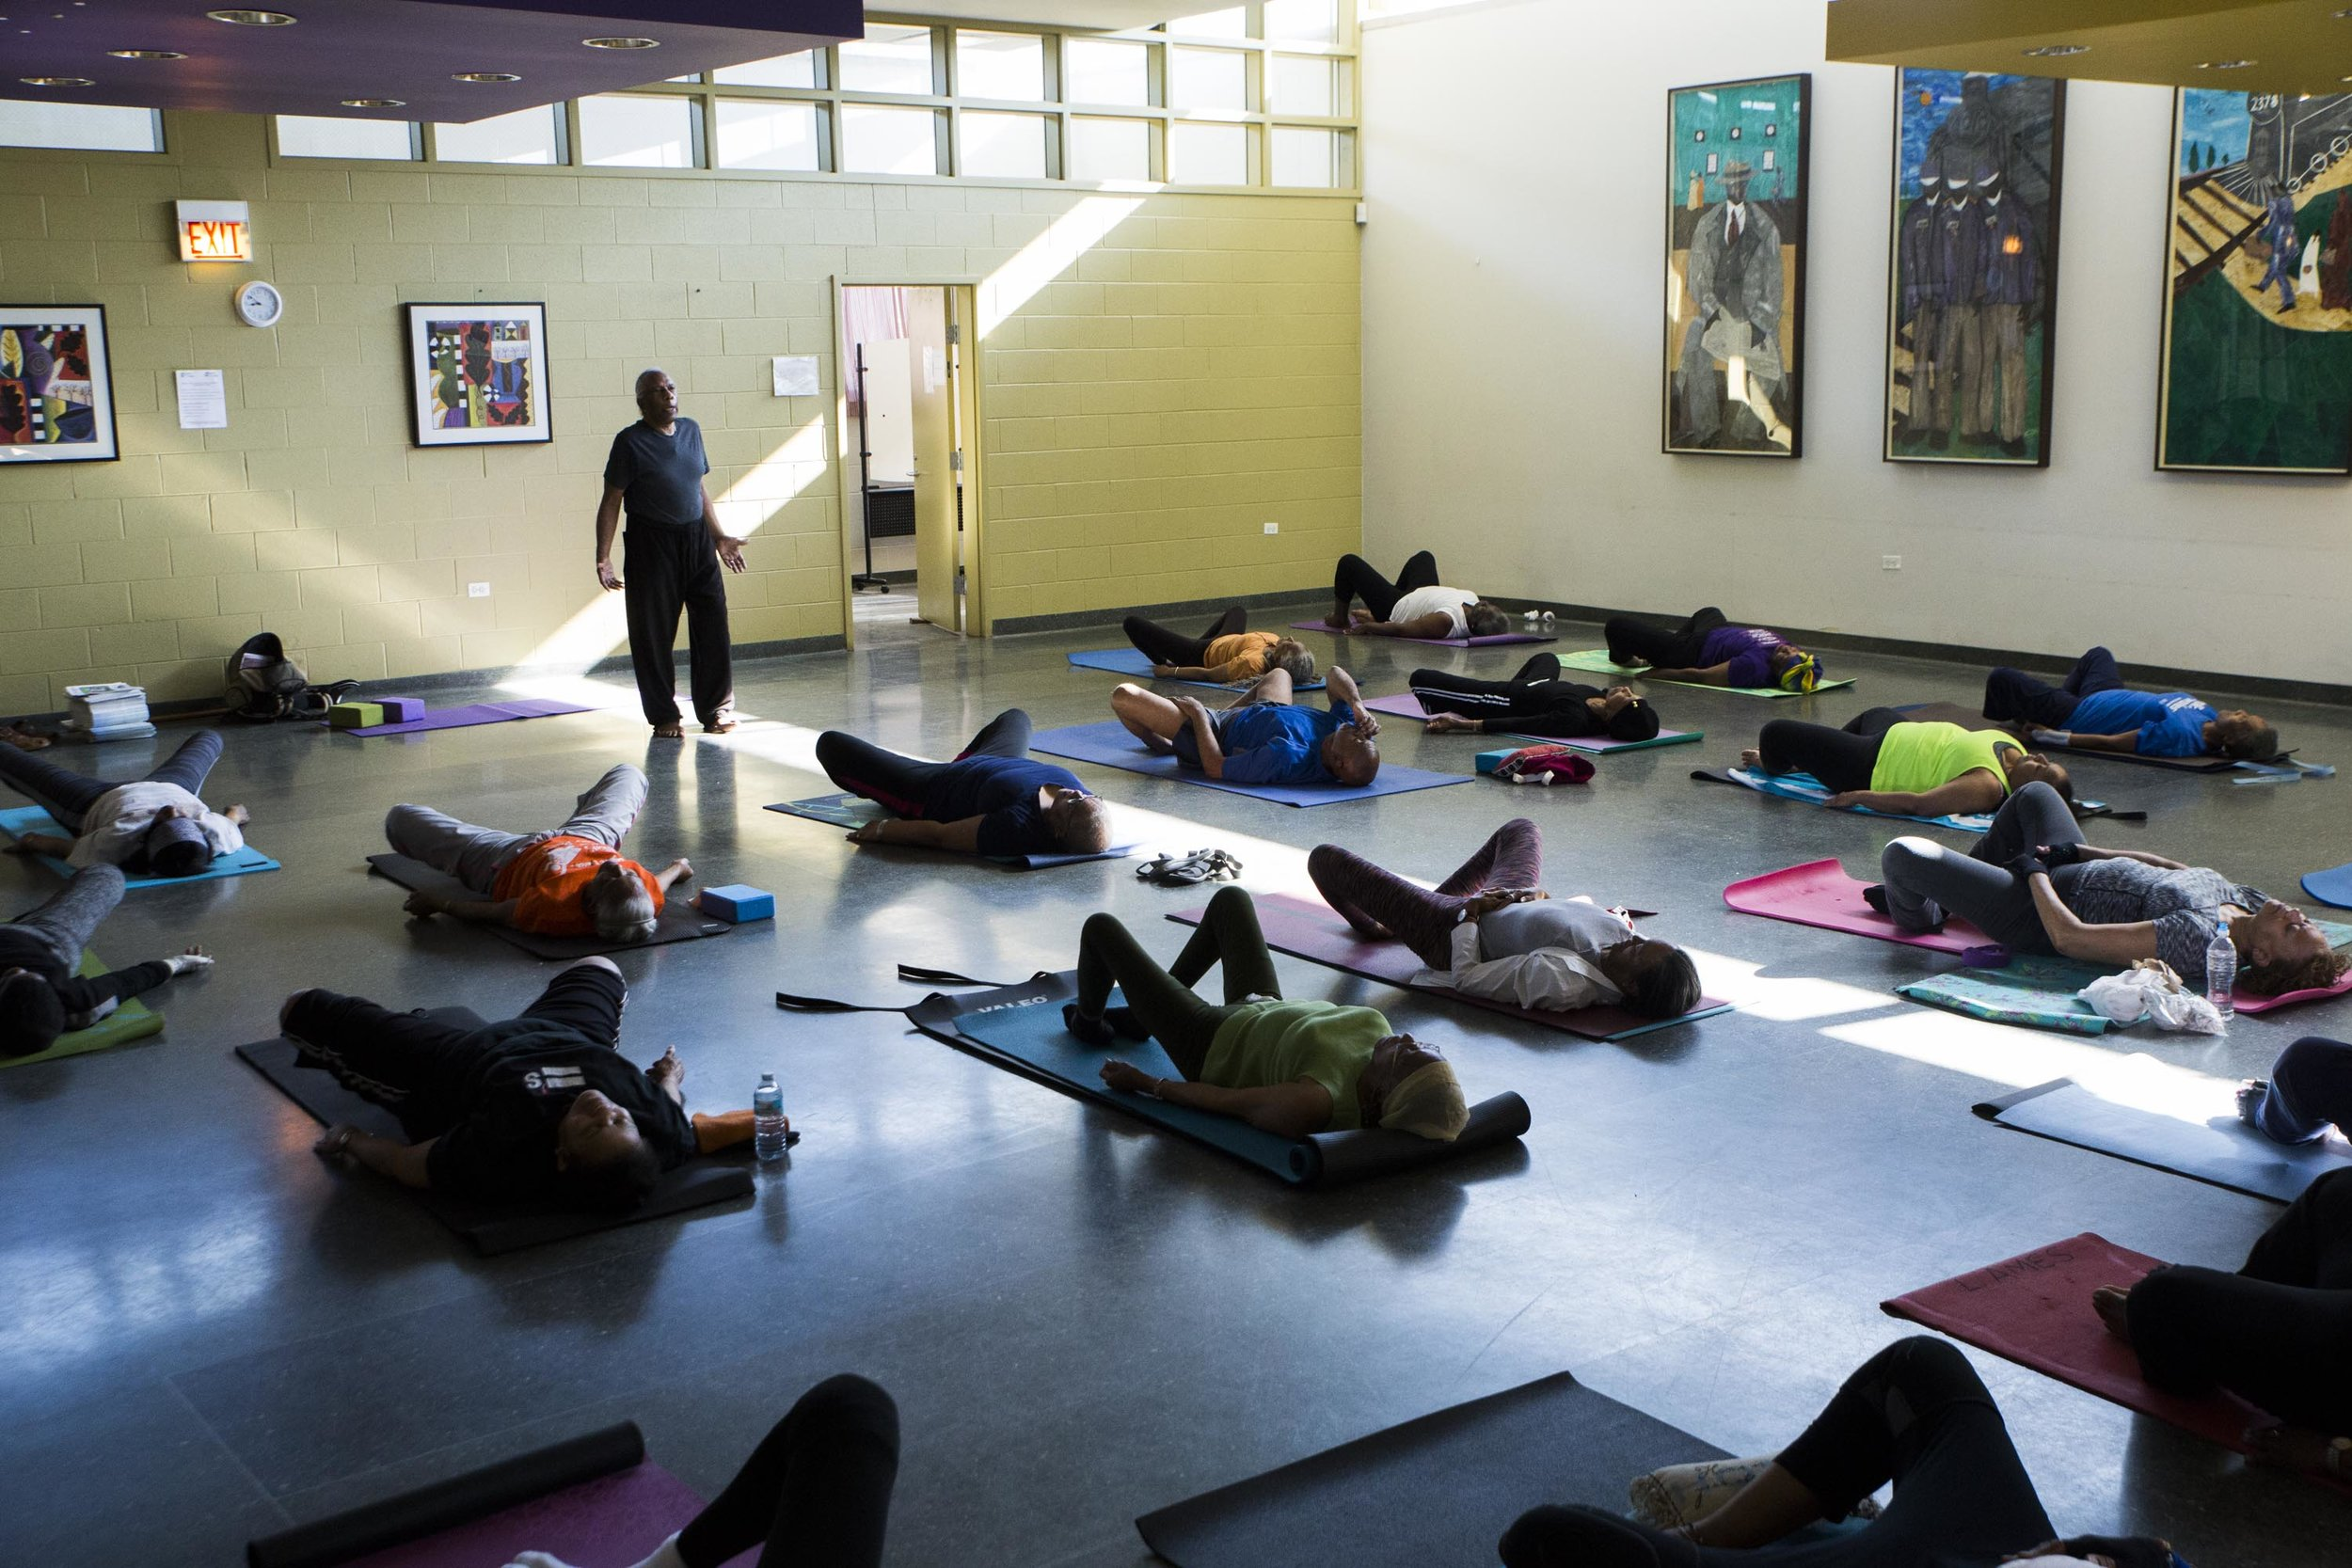 Yoga teacher Tony Stevens, who lives in Calumet Heights, used to serve as a caregiver for several people in his family who were sick. Now, he is committed to living a healthy lifestyle.